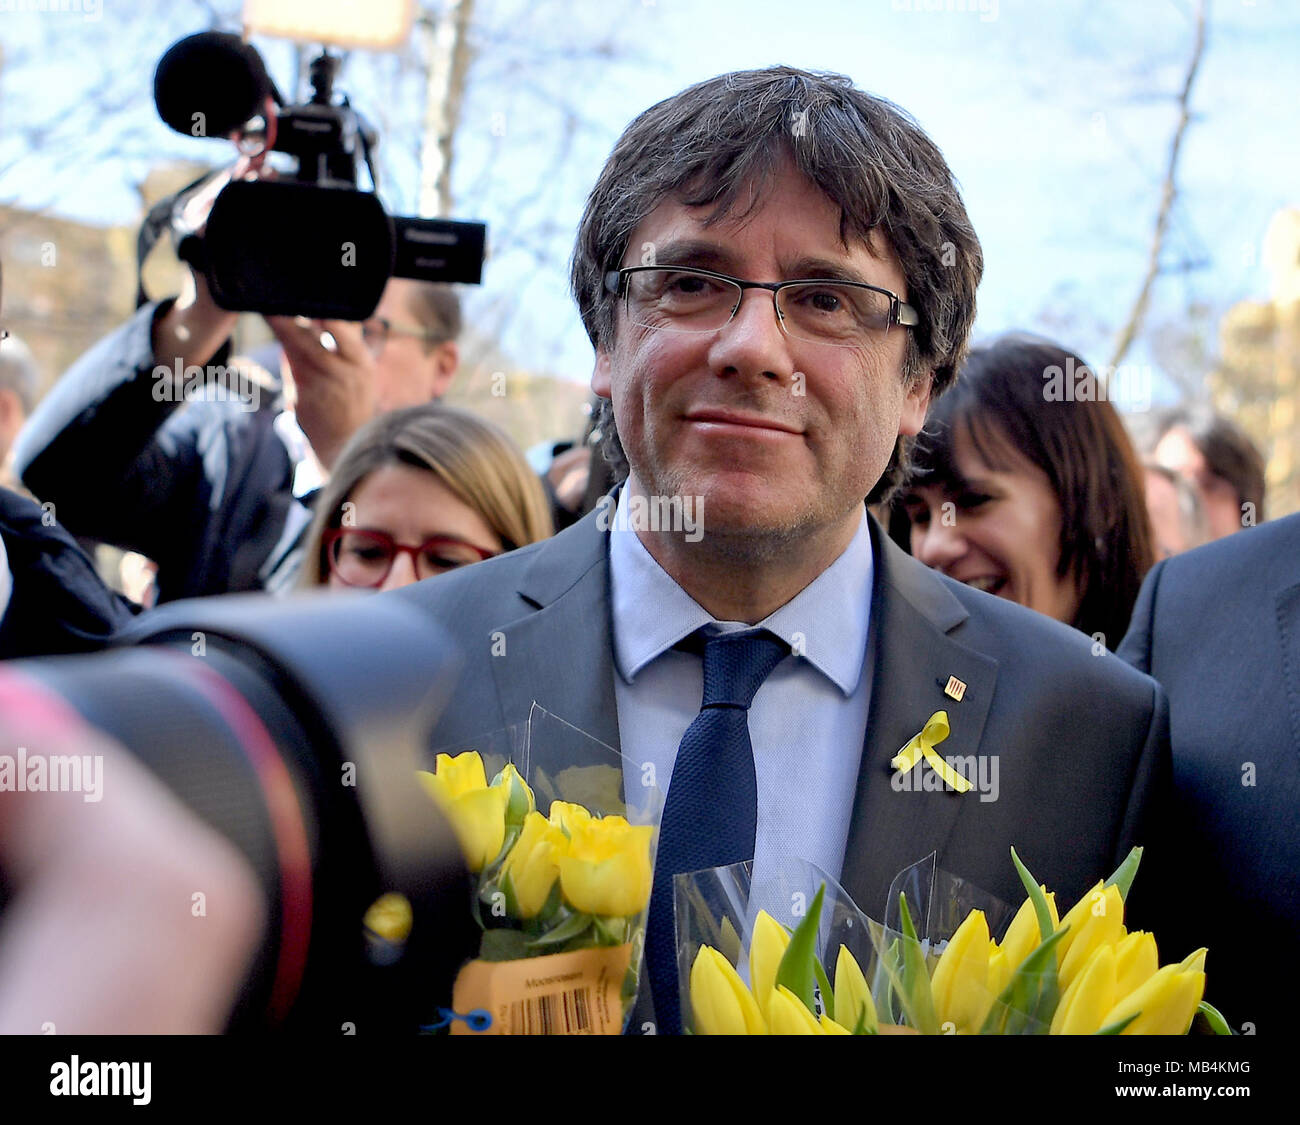 Berlin, Germany. 7th April 2018. Carles Puigdemont, former president of the Spanish region of Catalonia, standing with his supporters before the hall where he had just given a press conference. The Catalonian separatist leader was conditionally released yesterday from detention in Germany. Photo: Britta Pedersen/dpa-Zentralbild/ZB Credit: dpa picture alliance/Alamy Live News - Stock Image